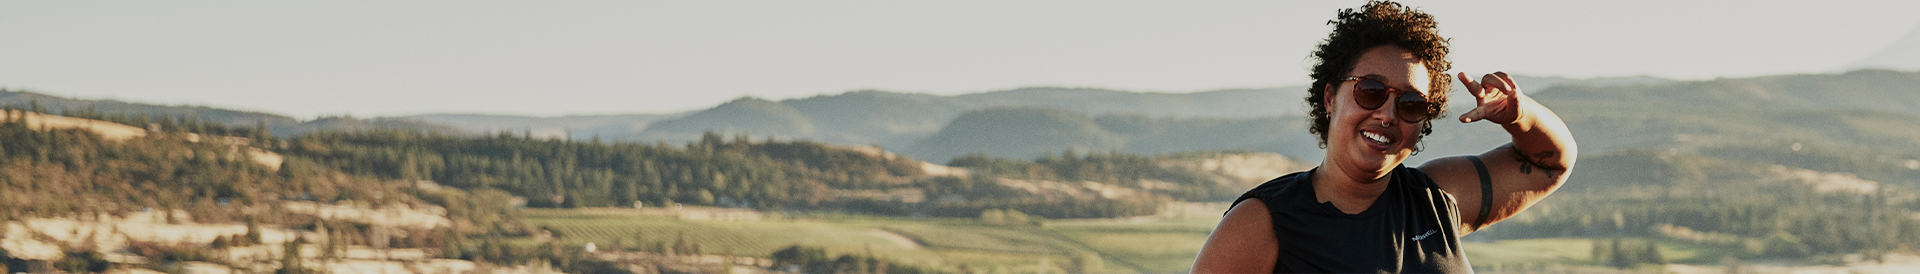 Smiling woman flashing a sideways peace sign with rolling hills and forests behind her.